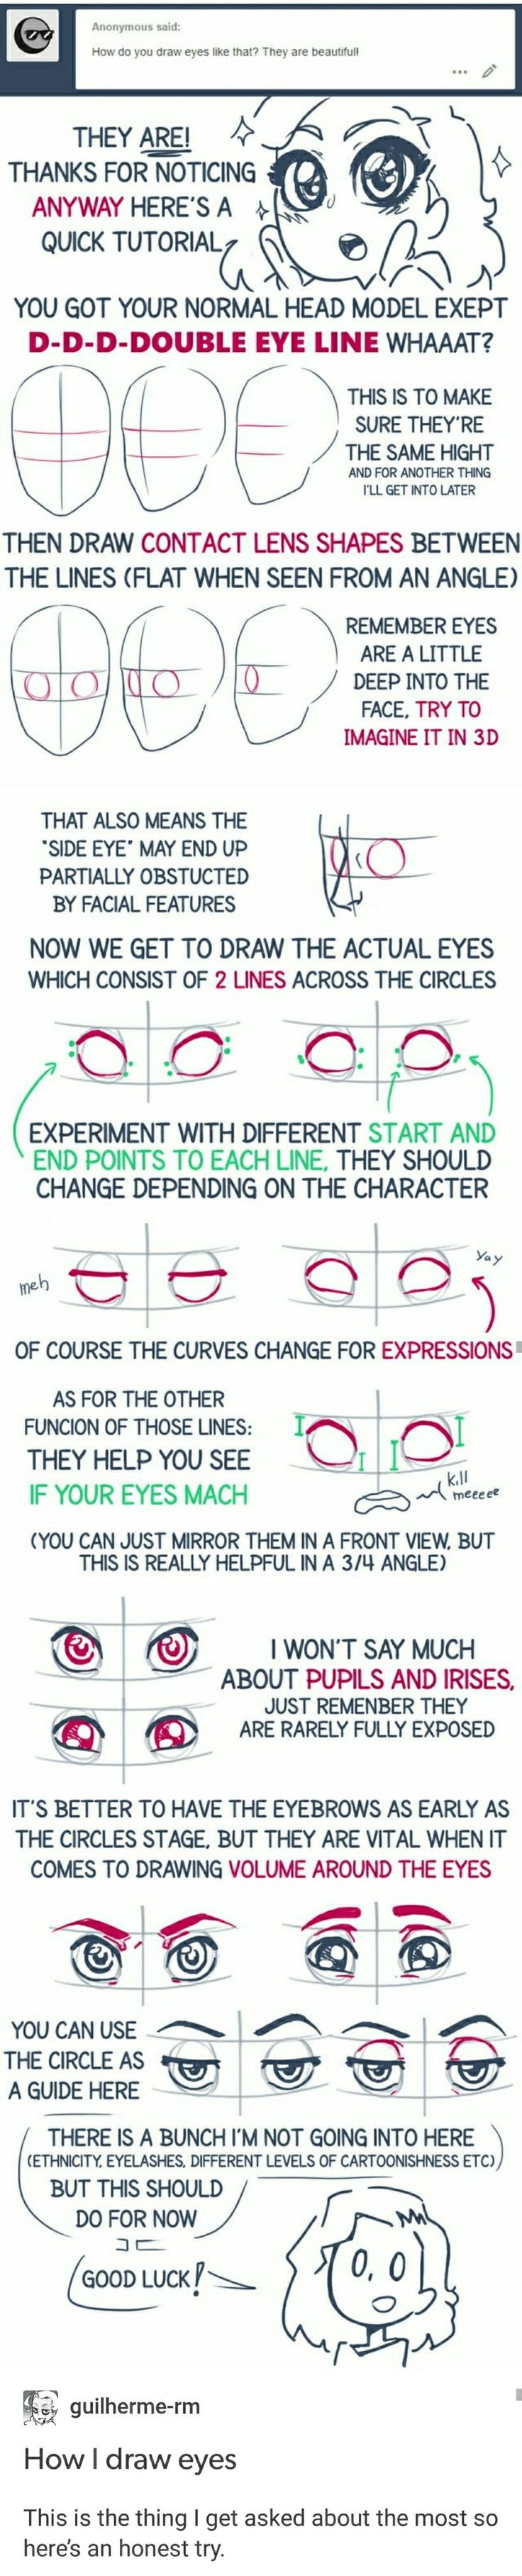 How to draw eyes tutorial eye